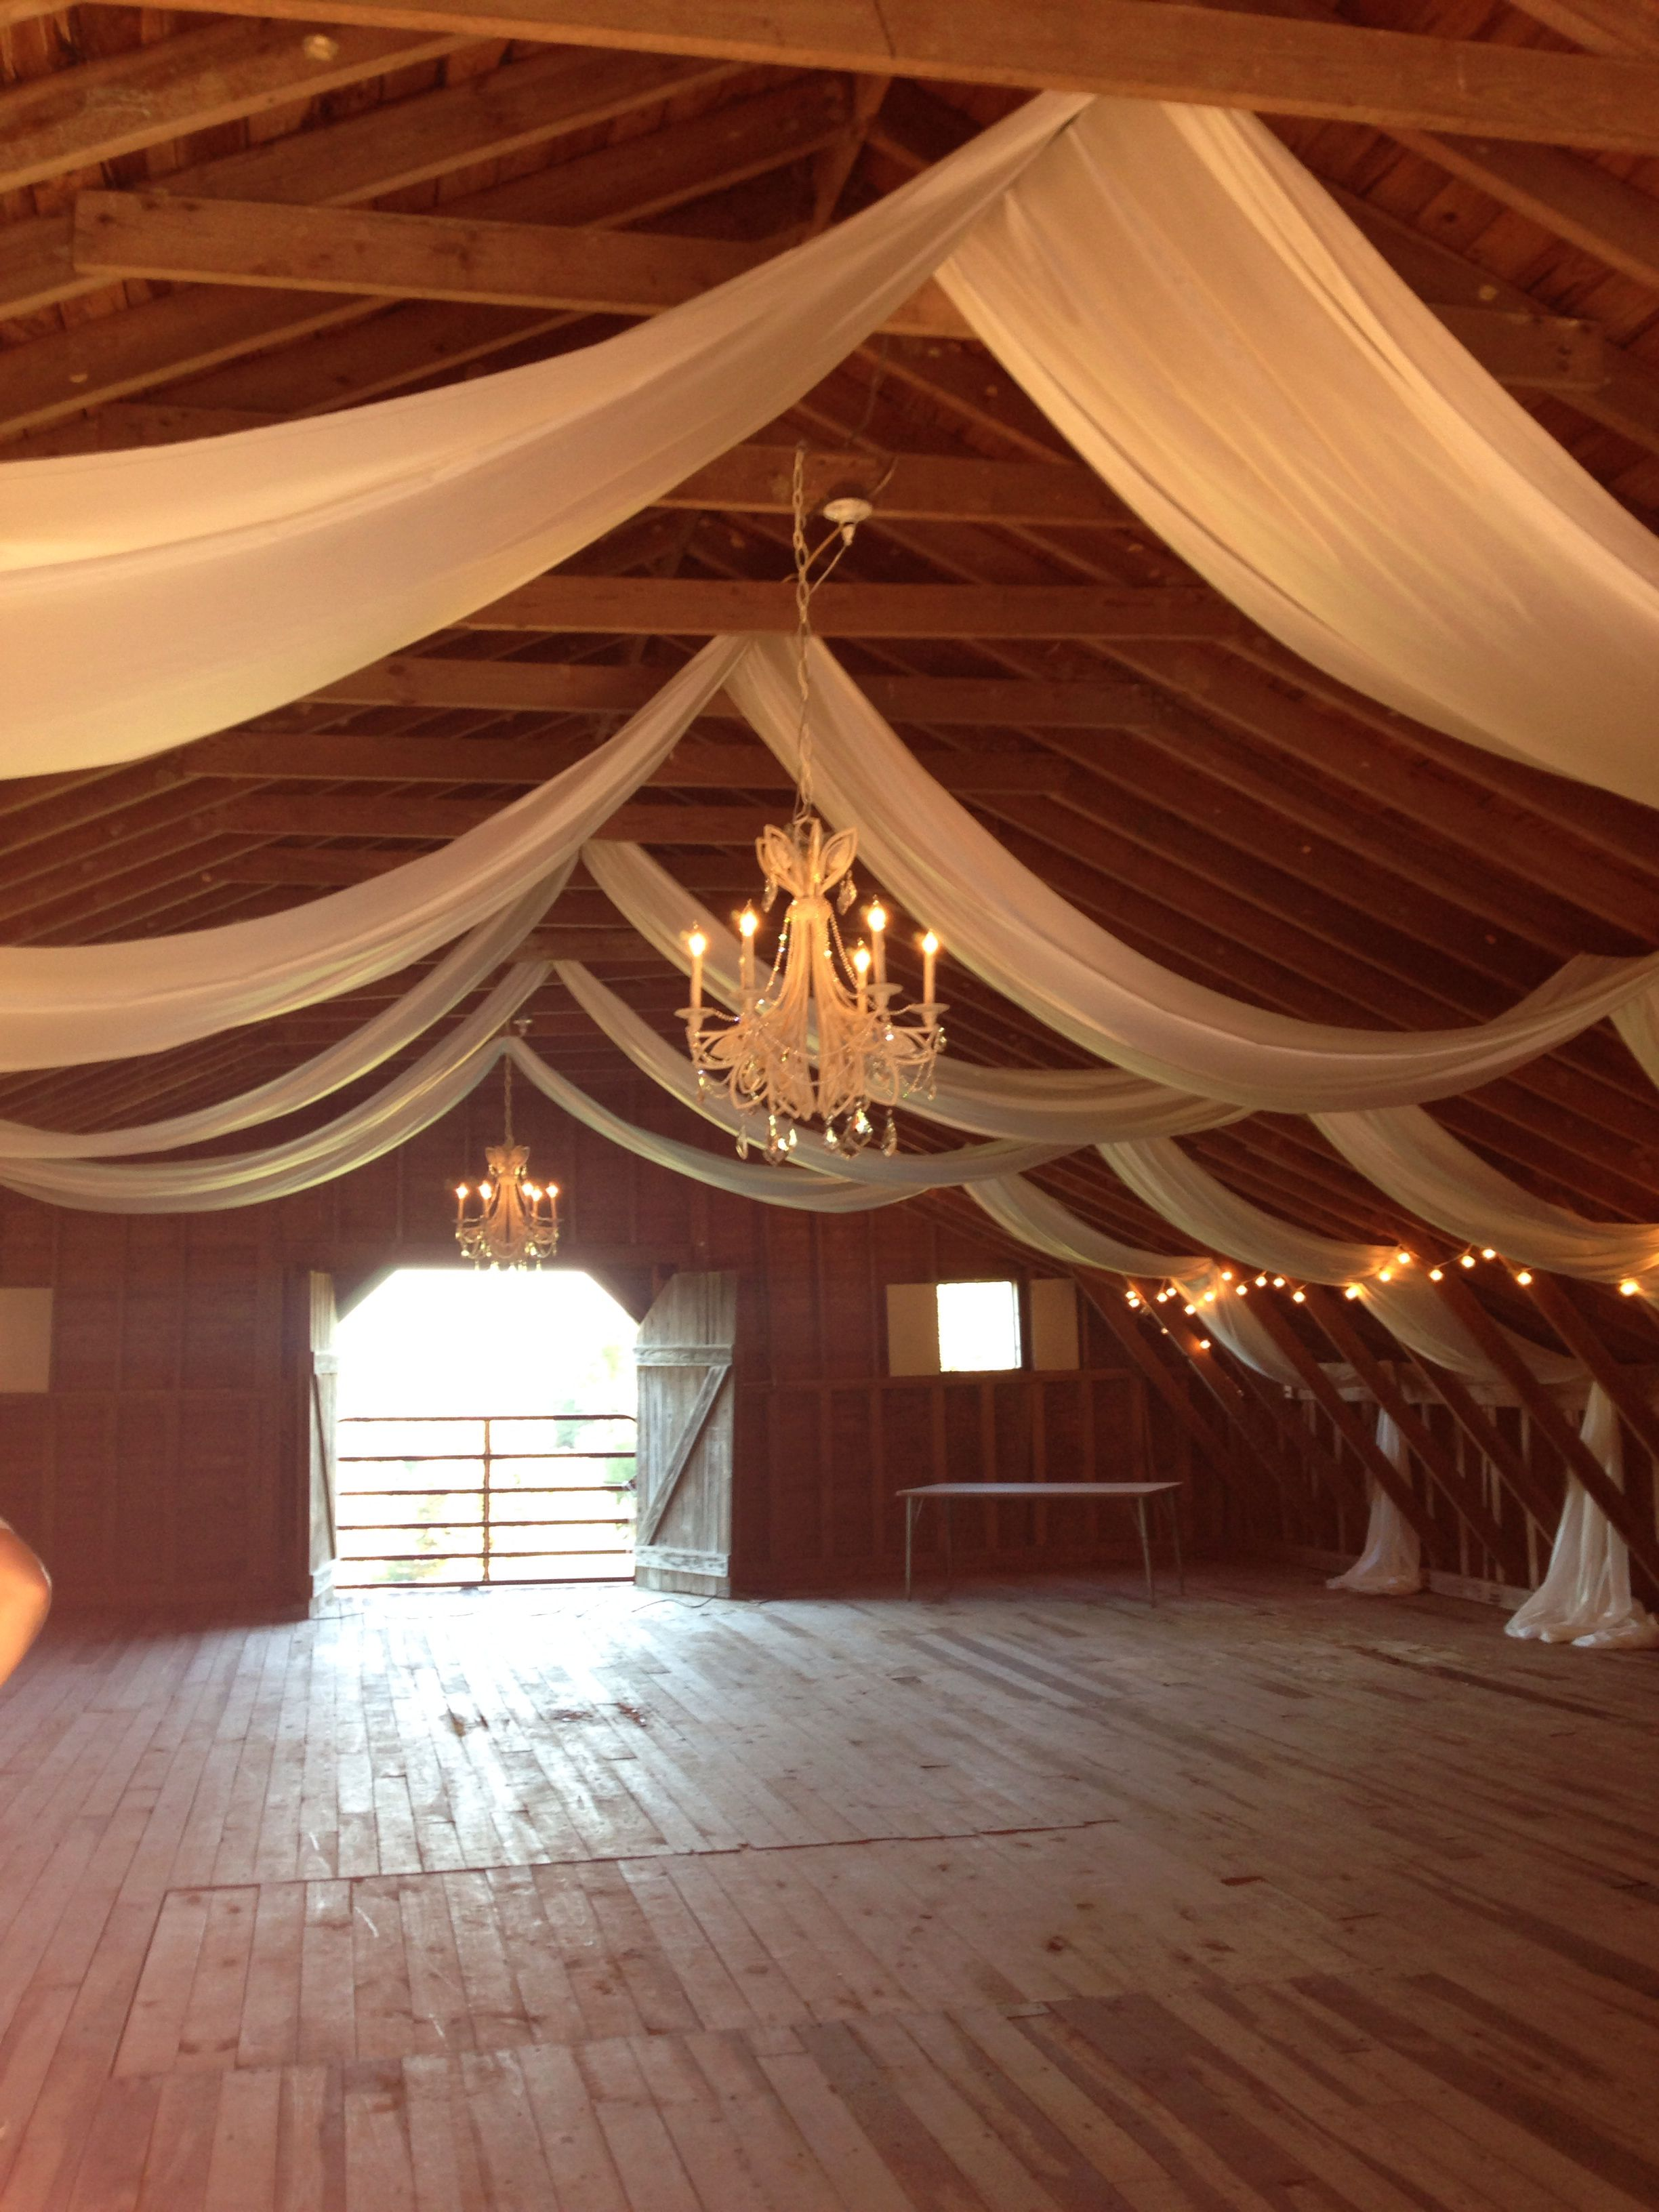 Wedding decorations tulle and lights  Fabric draped barn loft with chandeliers used for dance floor with